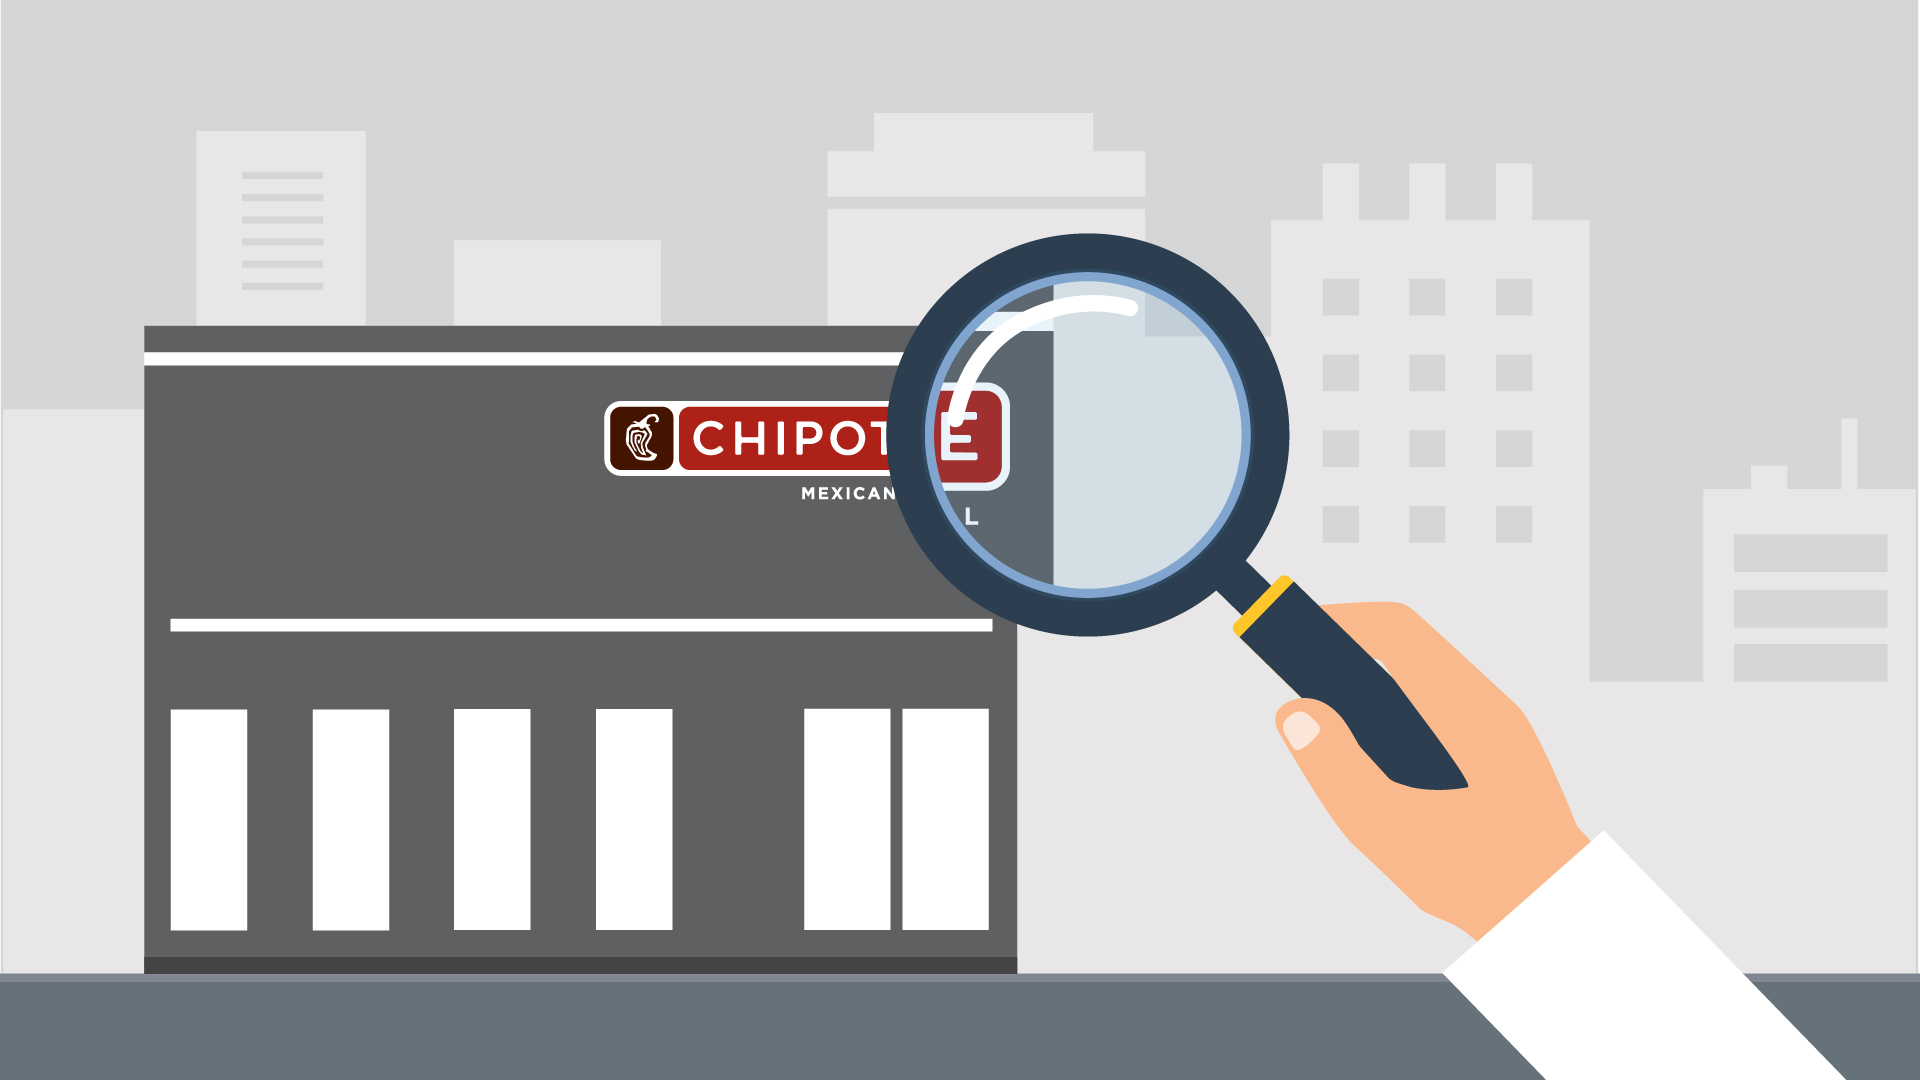 graphic drawing of a chipotle restaurant building under a magnifying glass